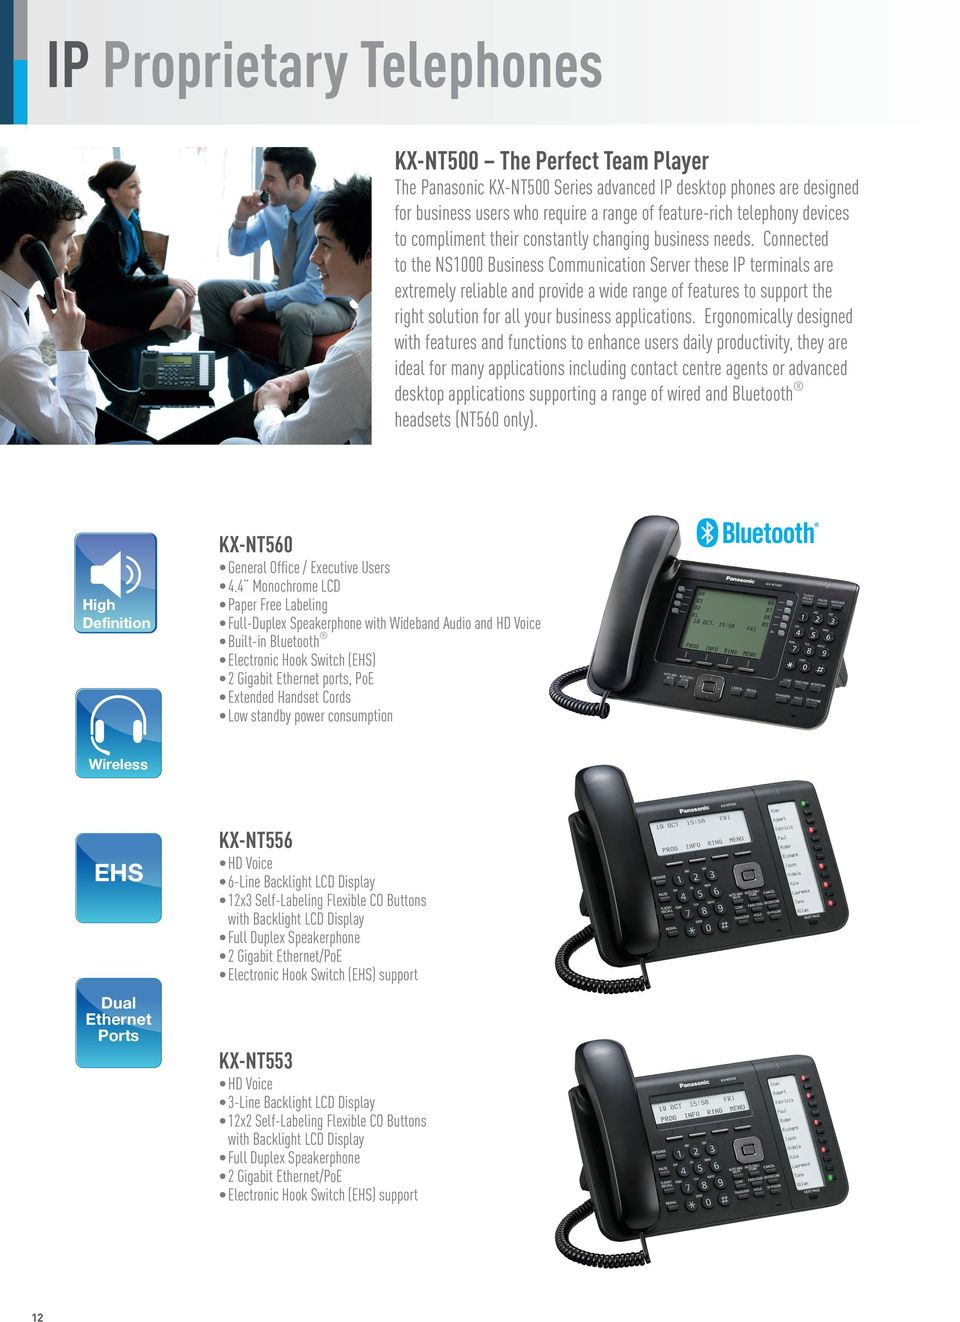 Connected to the NS1000 Business Communication Server these IP terminals are extremely reliable and provide a wide range of features to support the right solution for all your business applications.